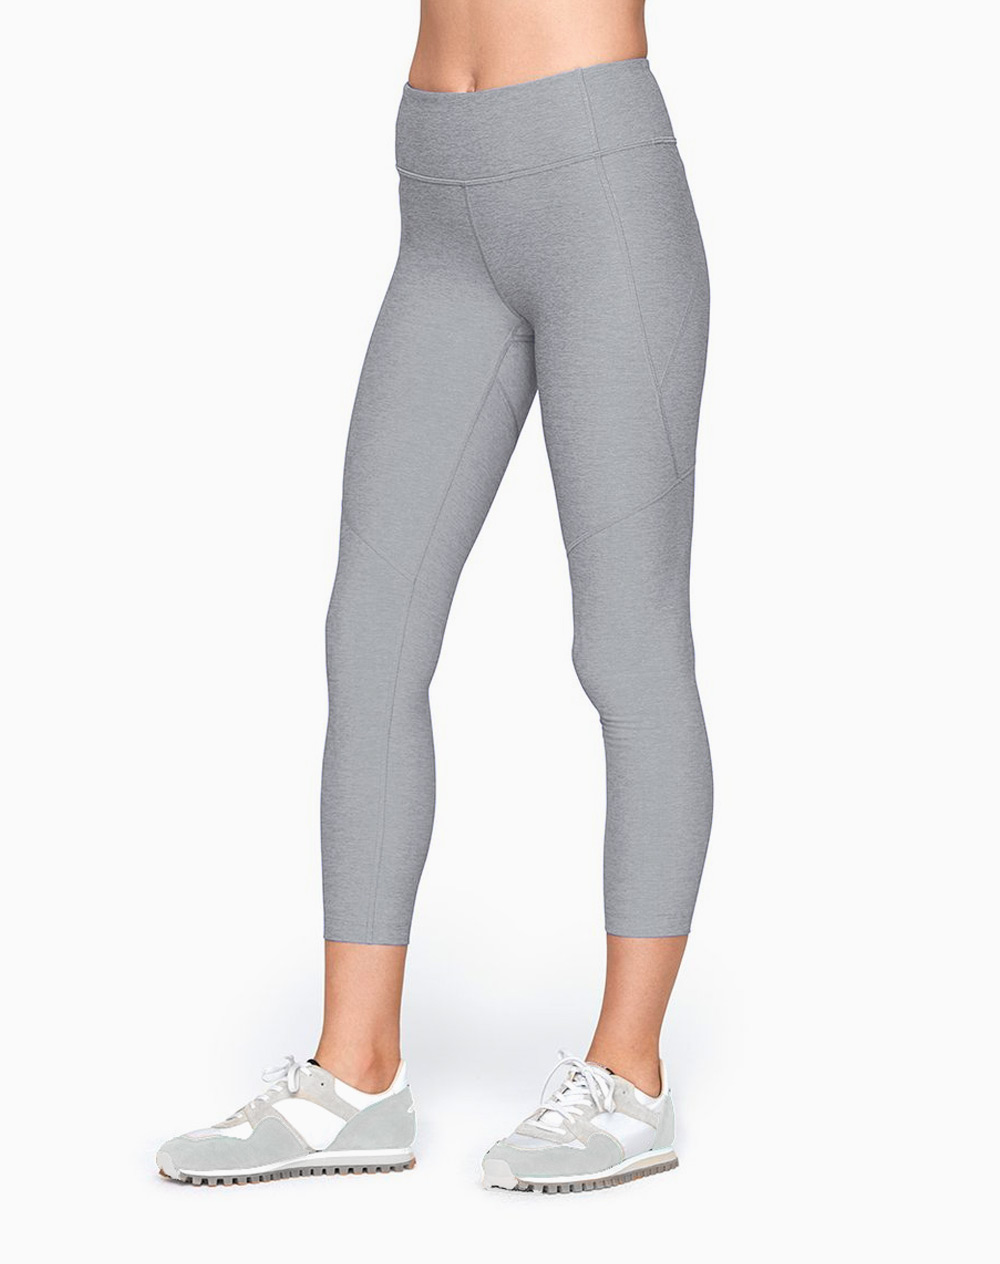 3/4 Warmup Leggings in Ash by Outdoor Voices |